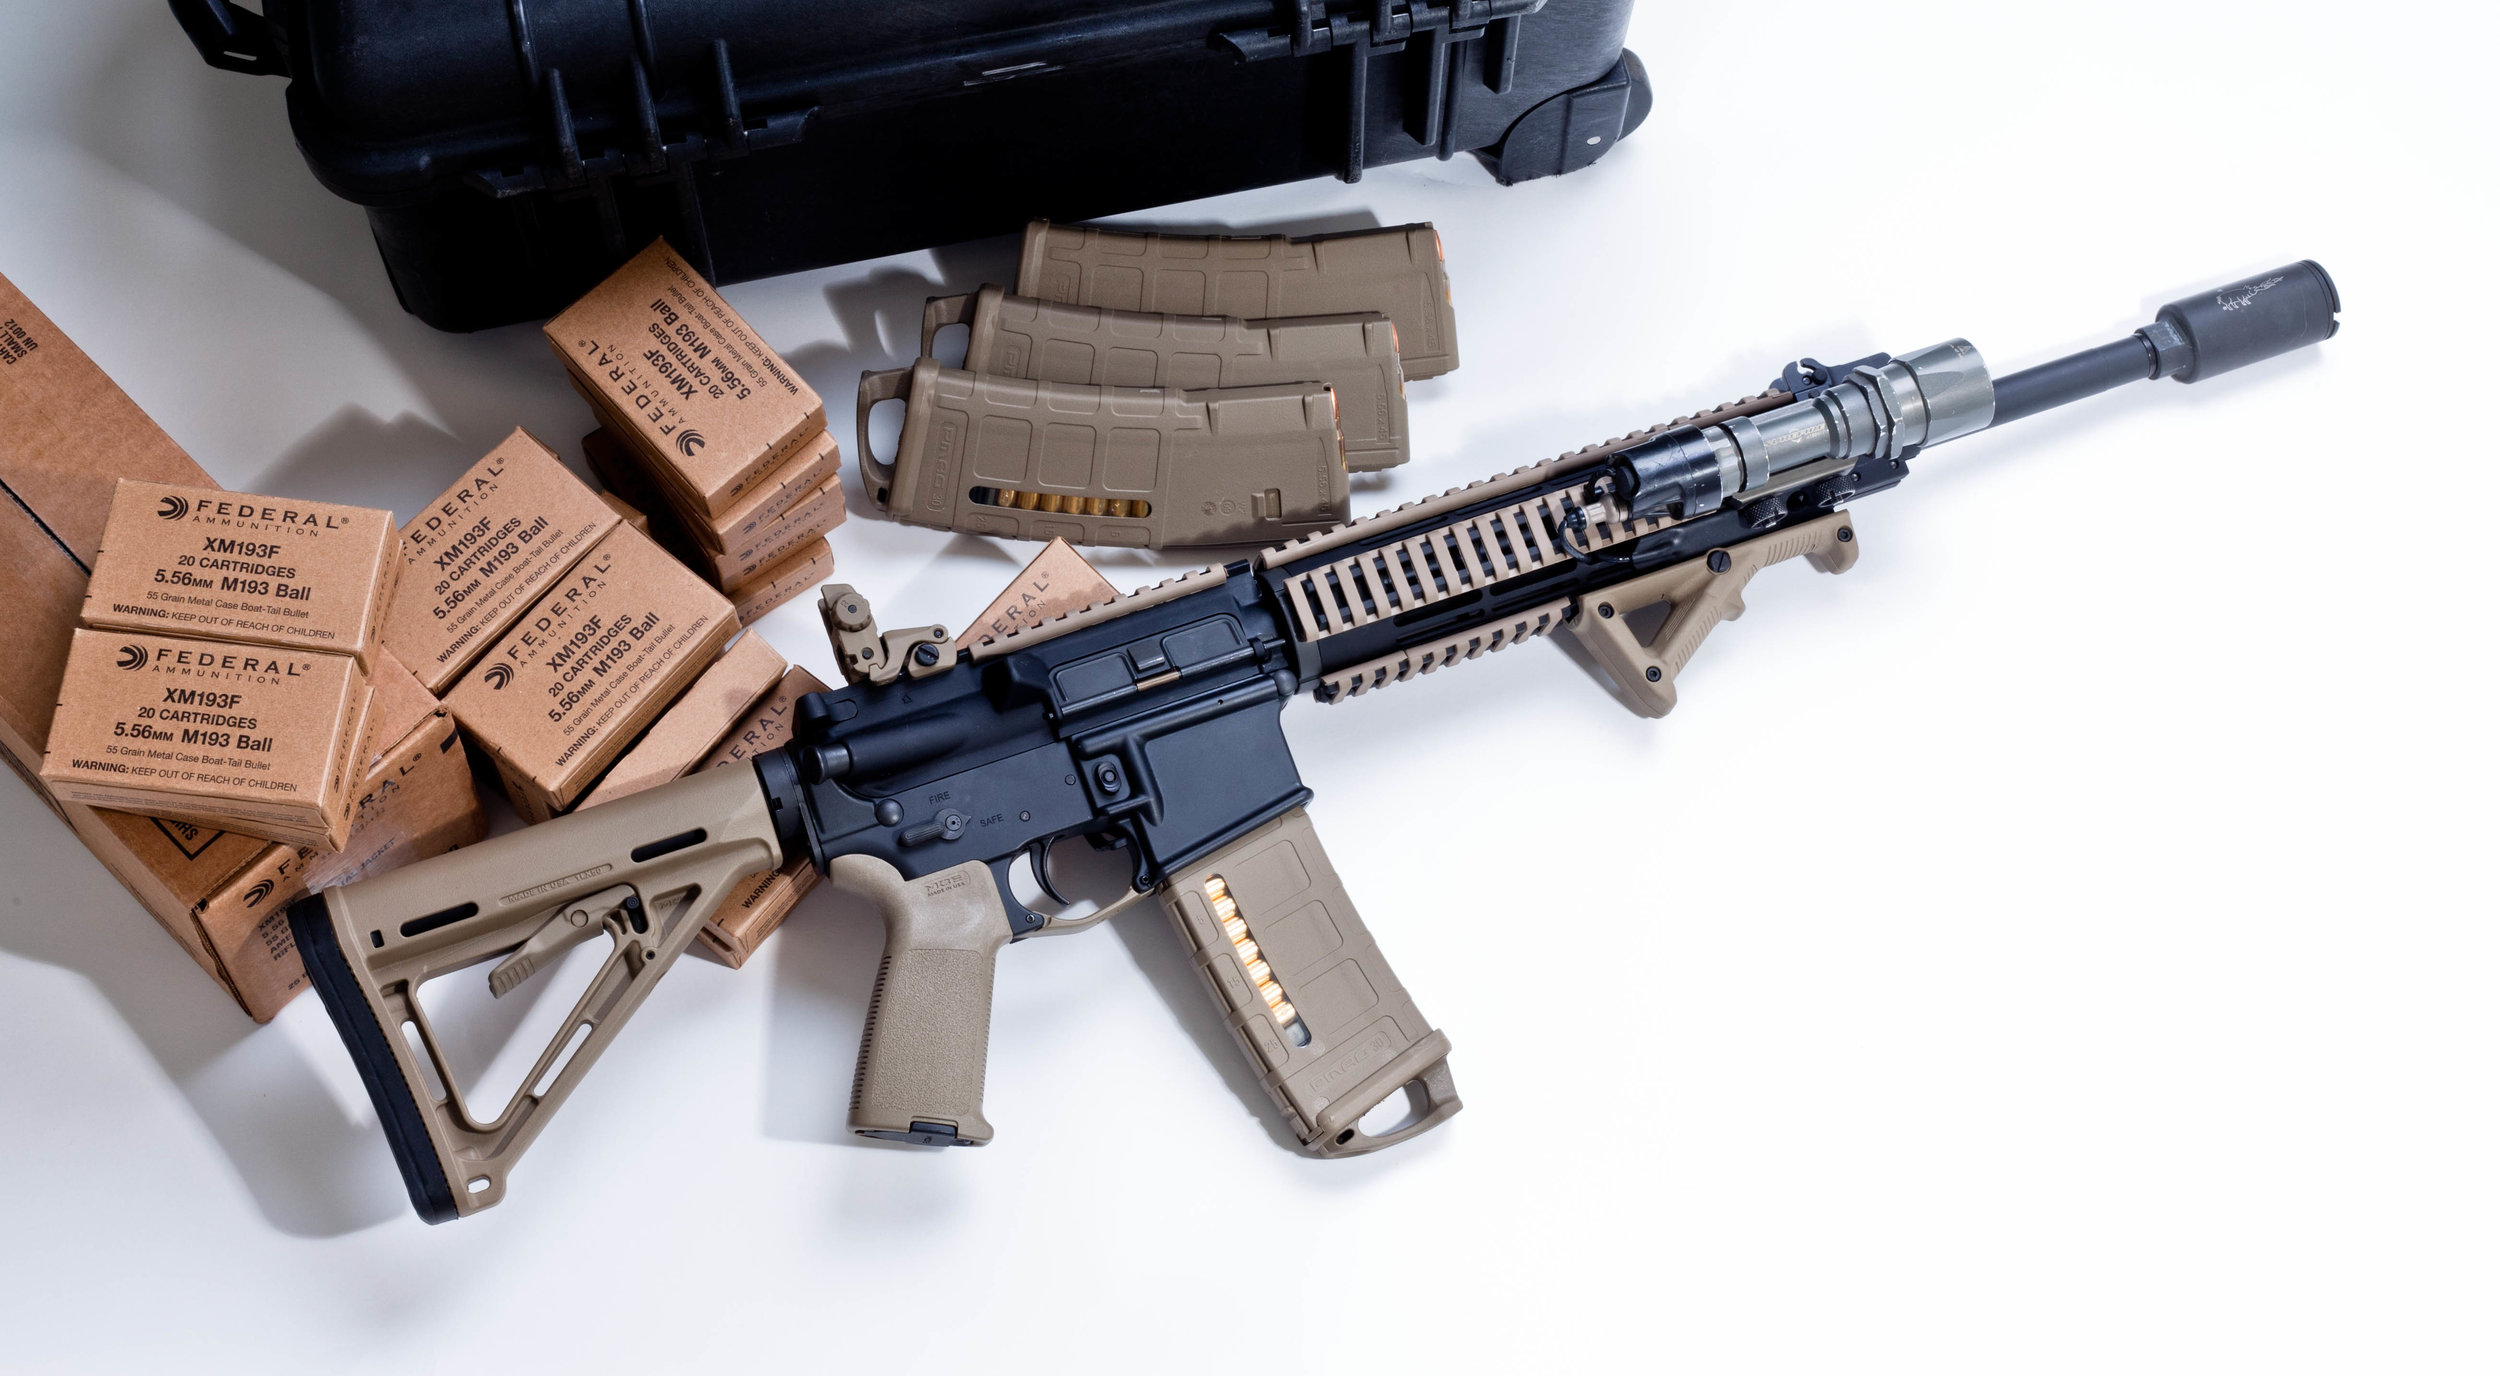 The Anatomy and damage of an AR-15 — The Quaker Campus